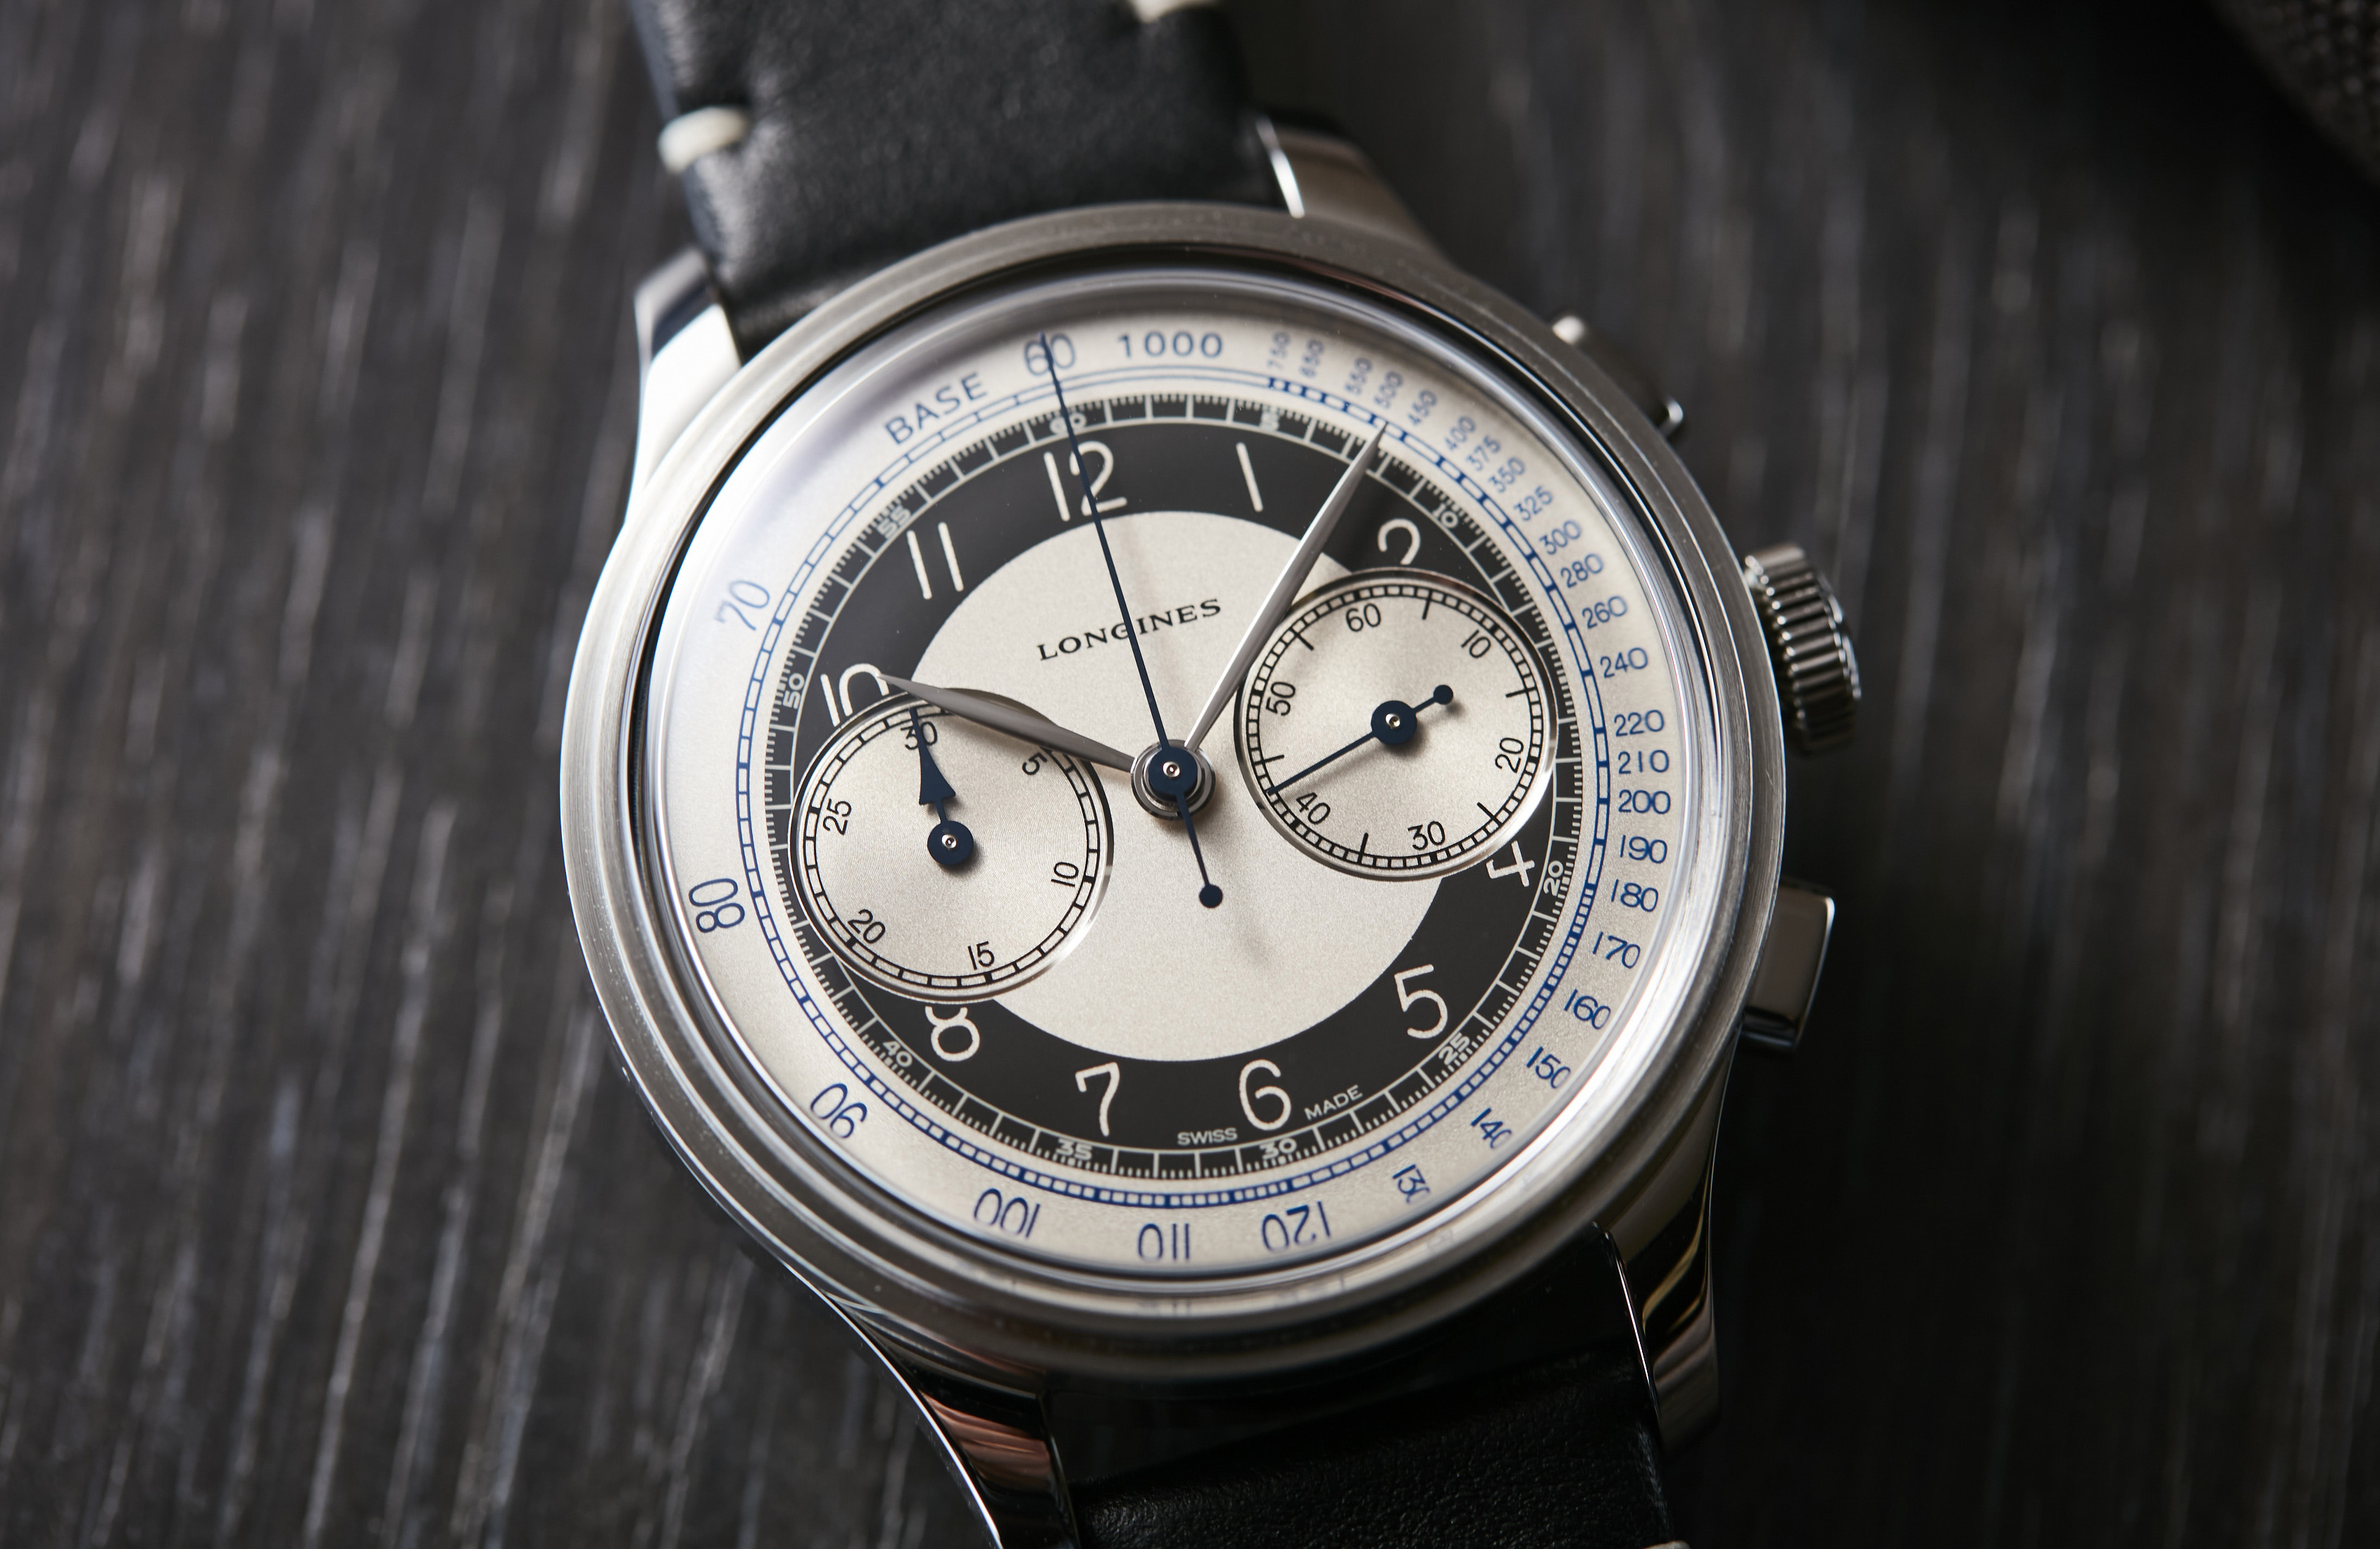 HANDS-ON: Longines Heritage Classic 'Tuxedo' collection